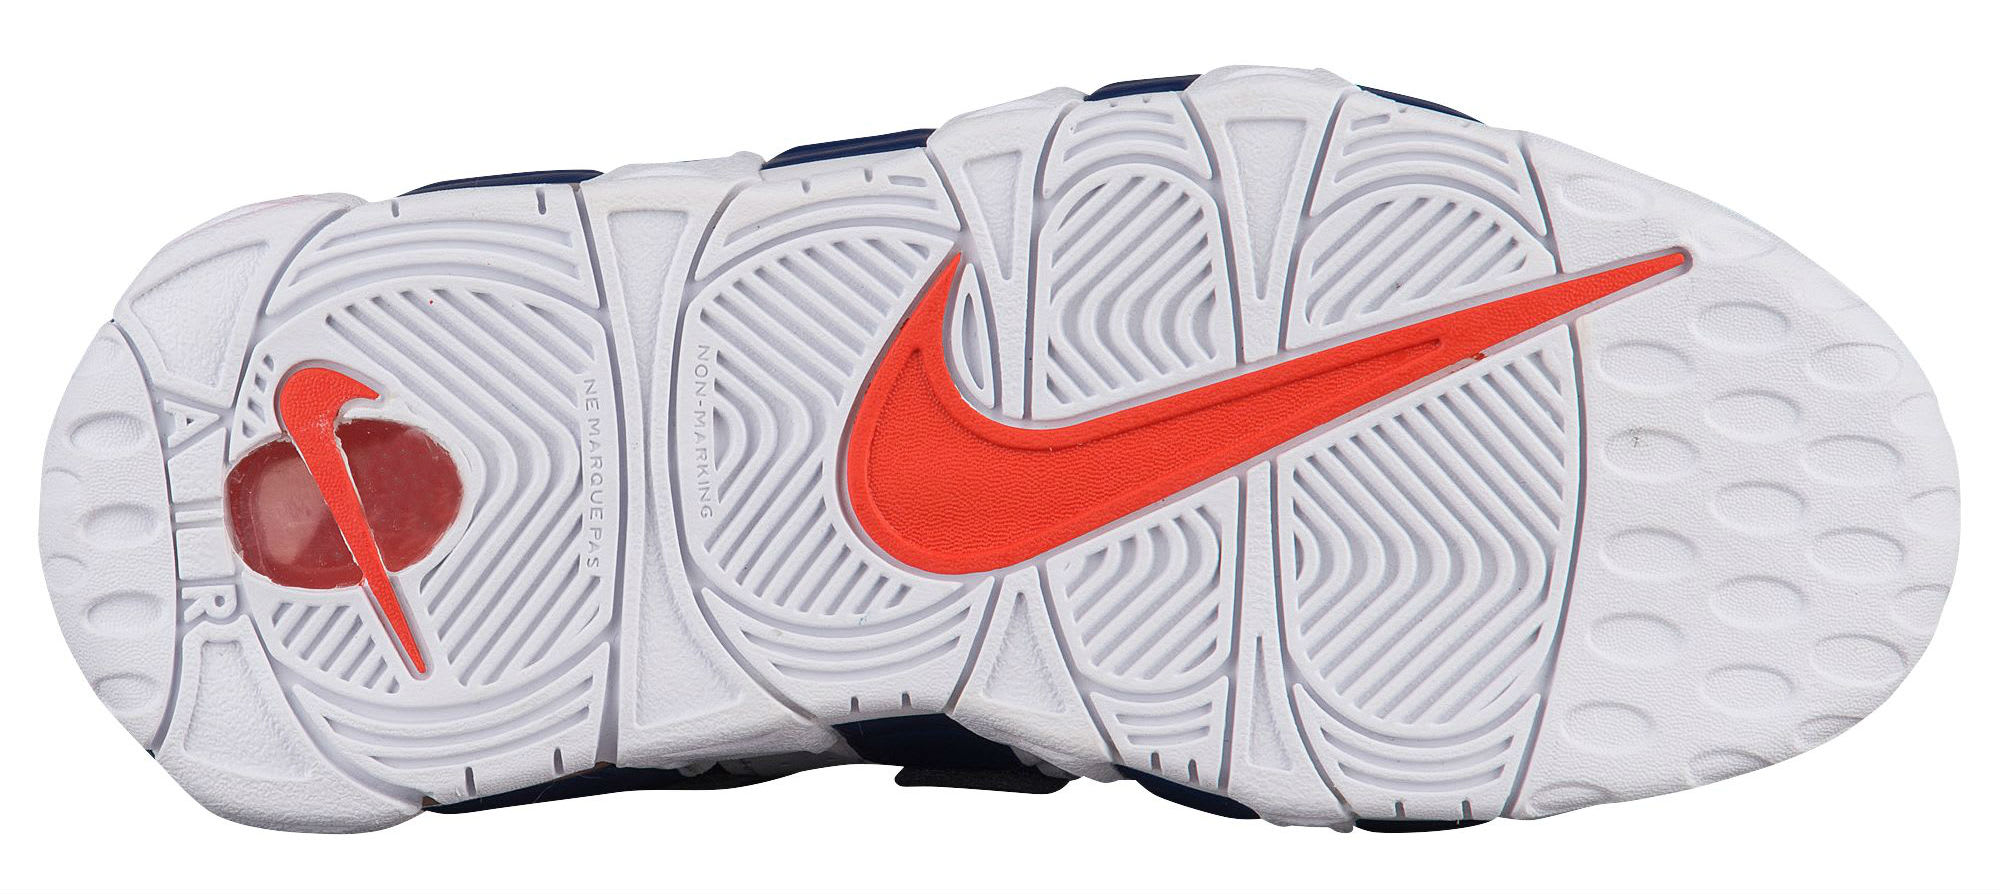 Nike Air More Uptempo Knicks Release Date Sole